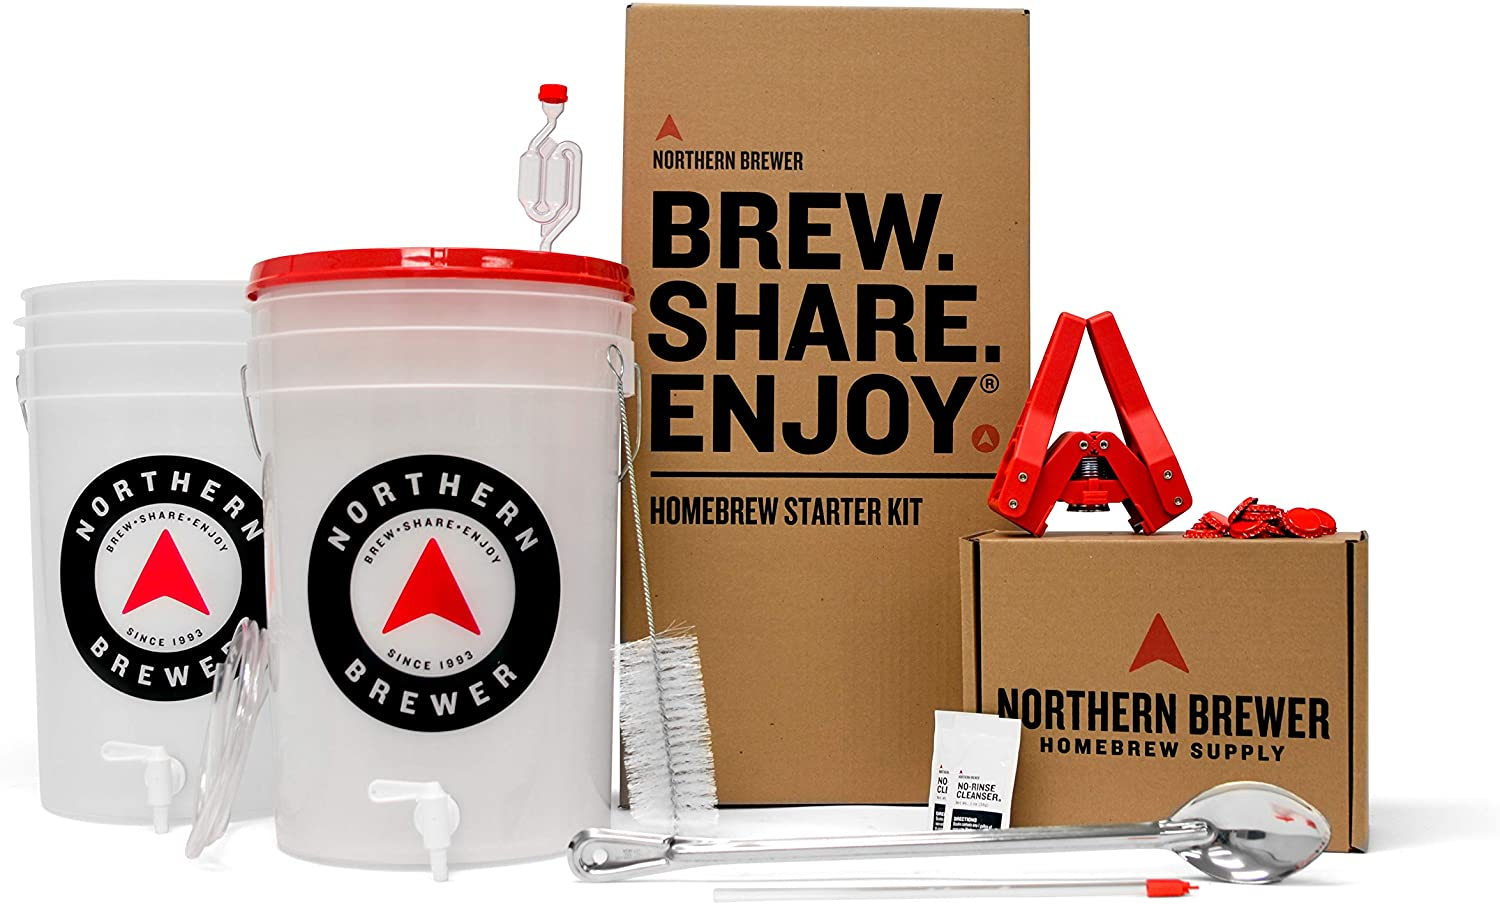 Northern Brewer HomeBrewing Starter Kit, best gifts for beer lovers